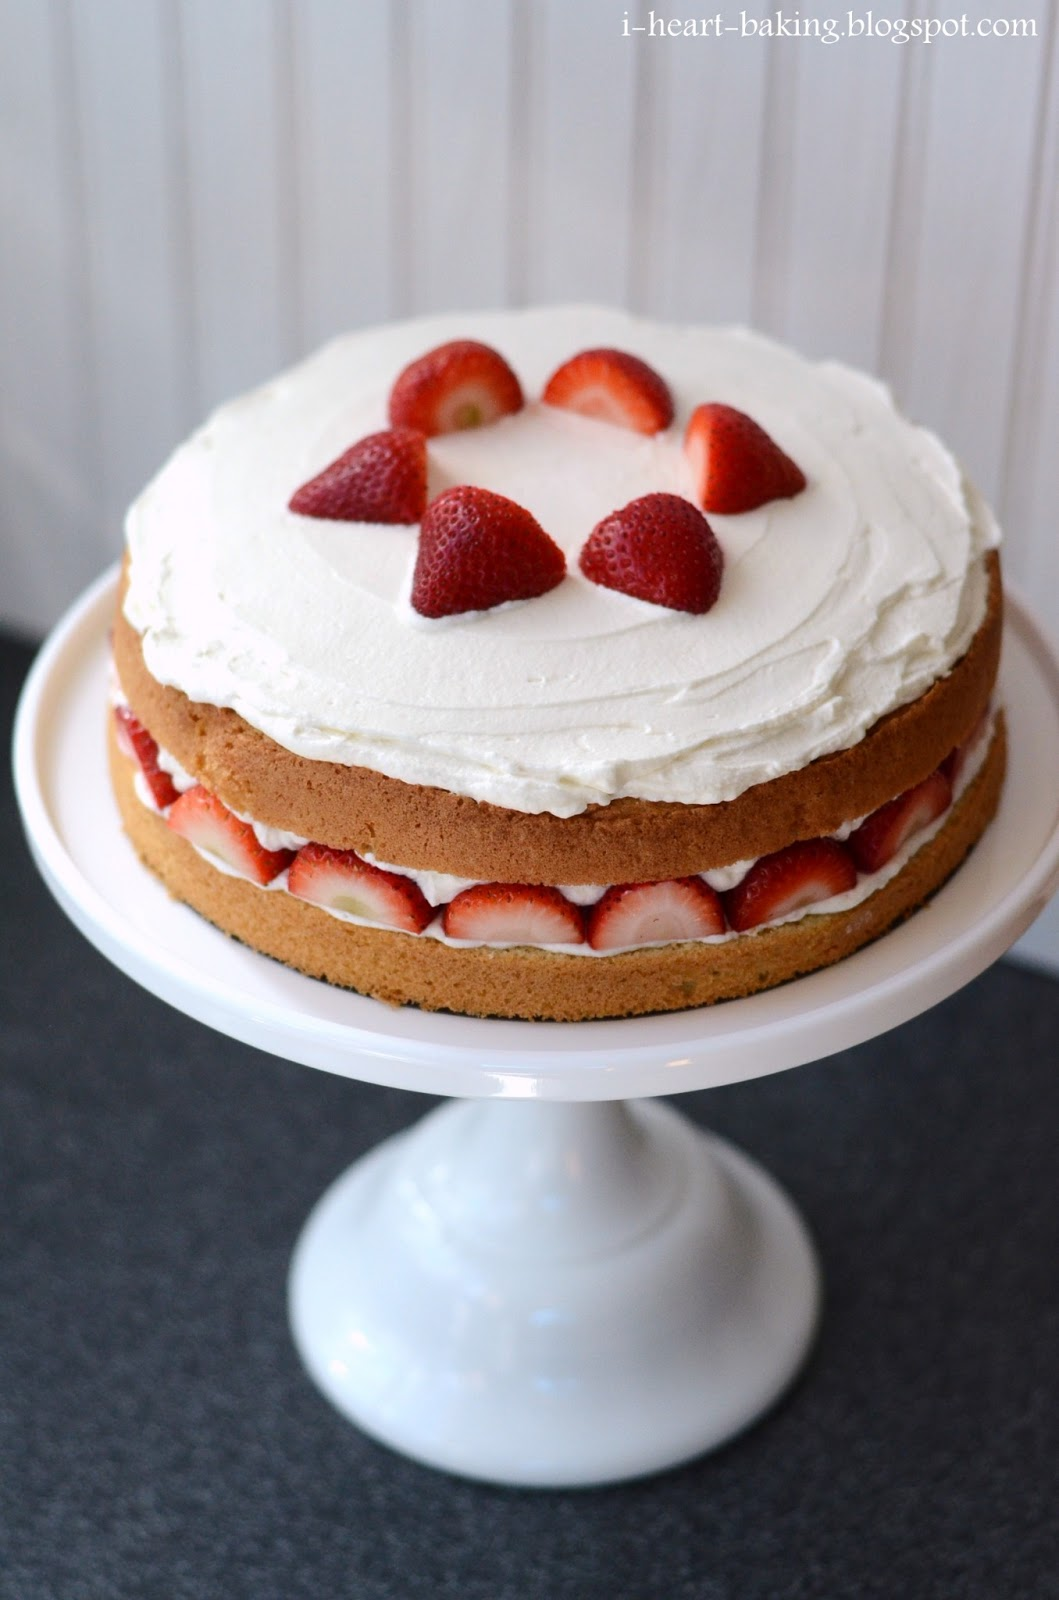 heart baking!: strawberry cream cake